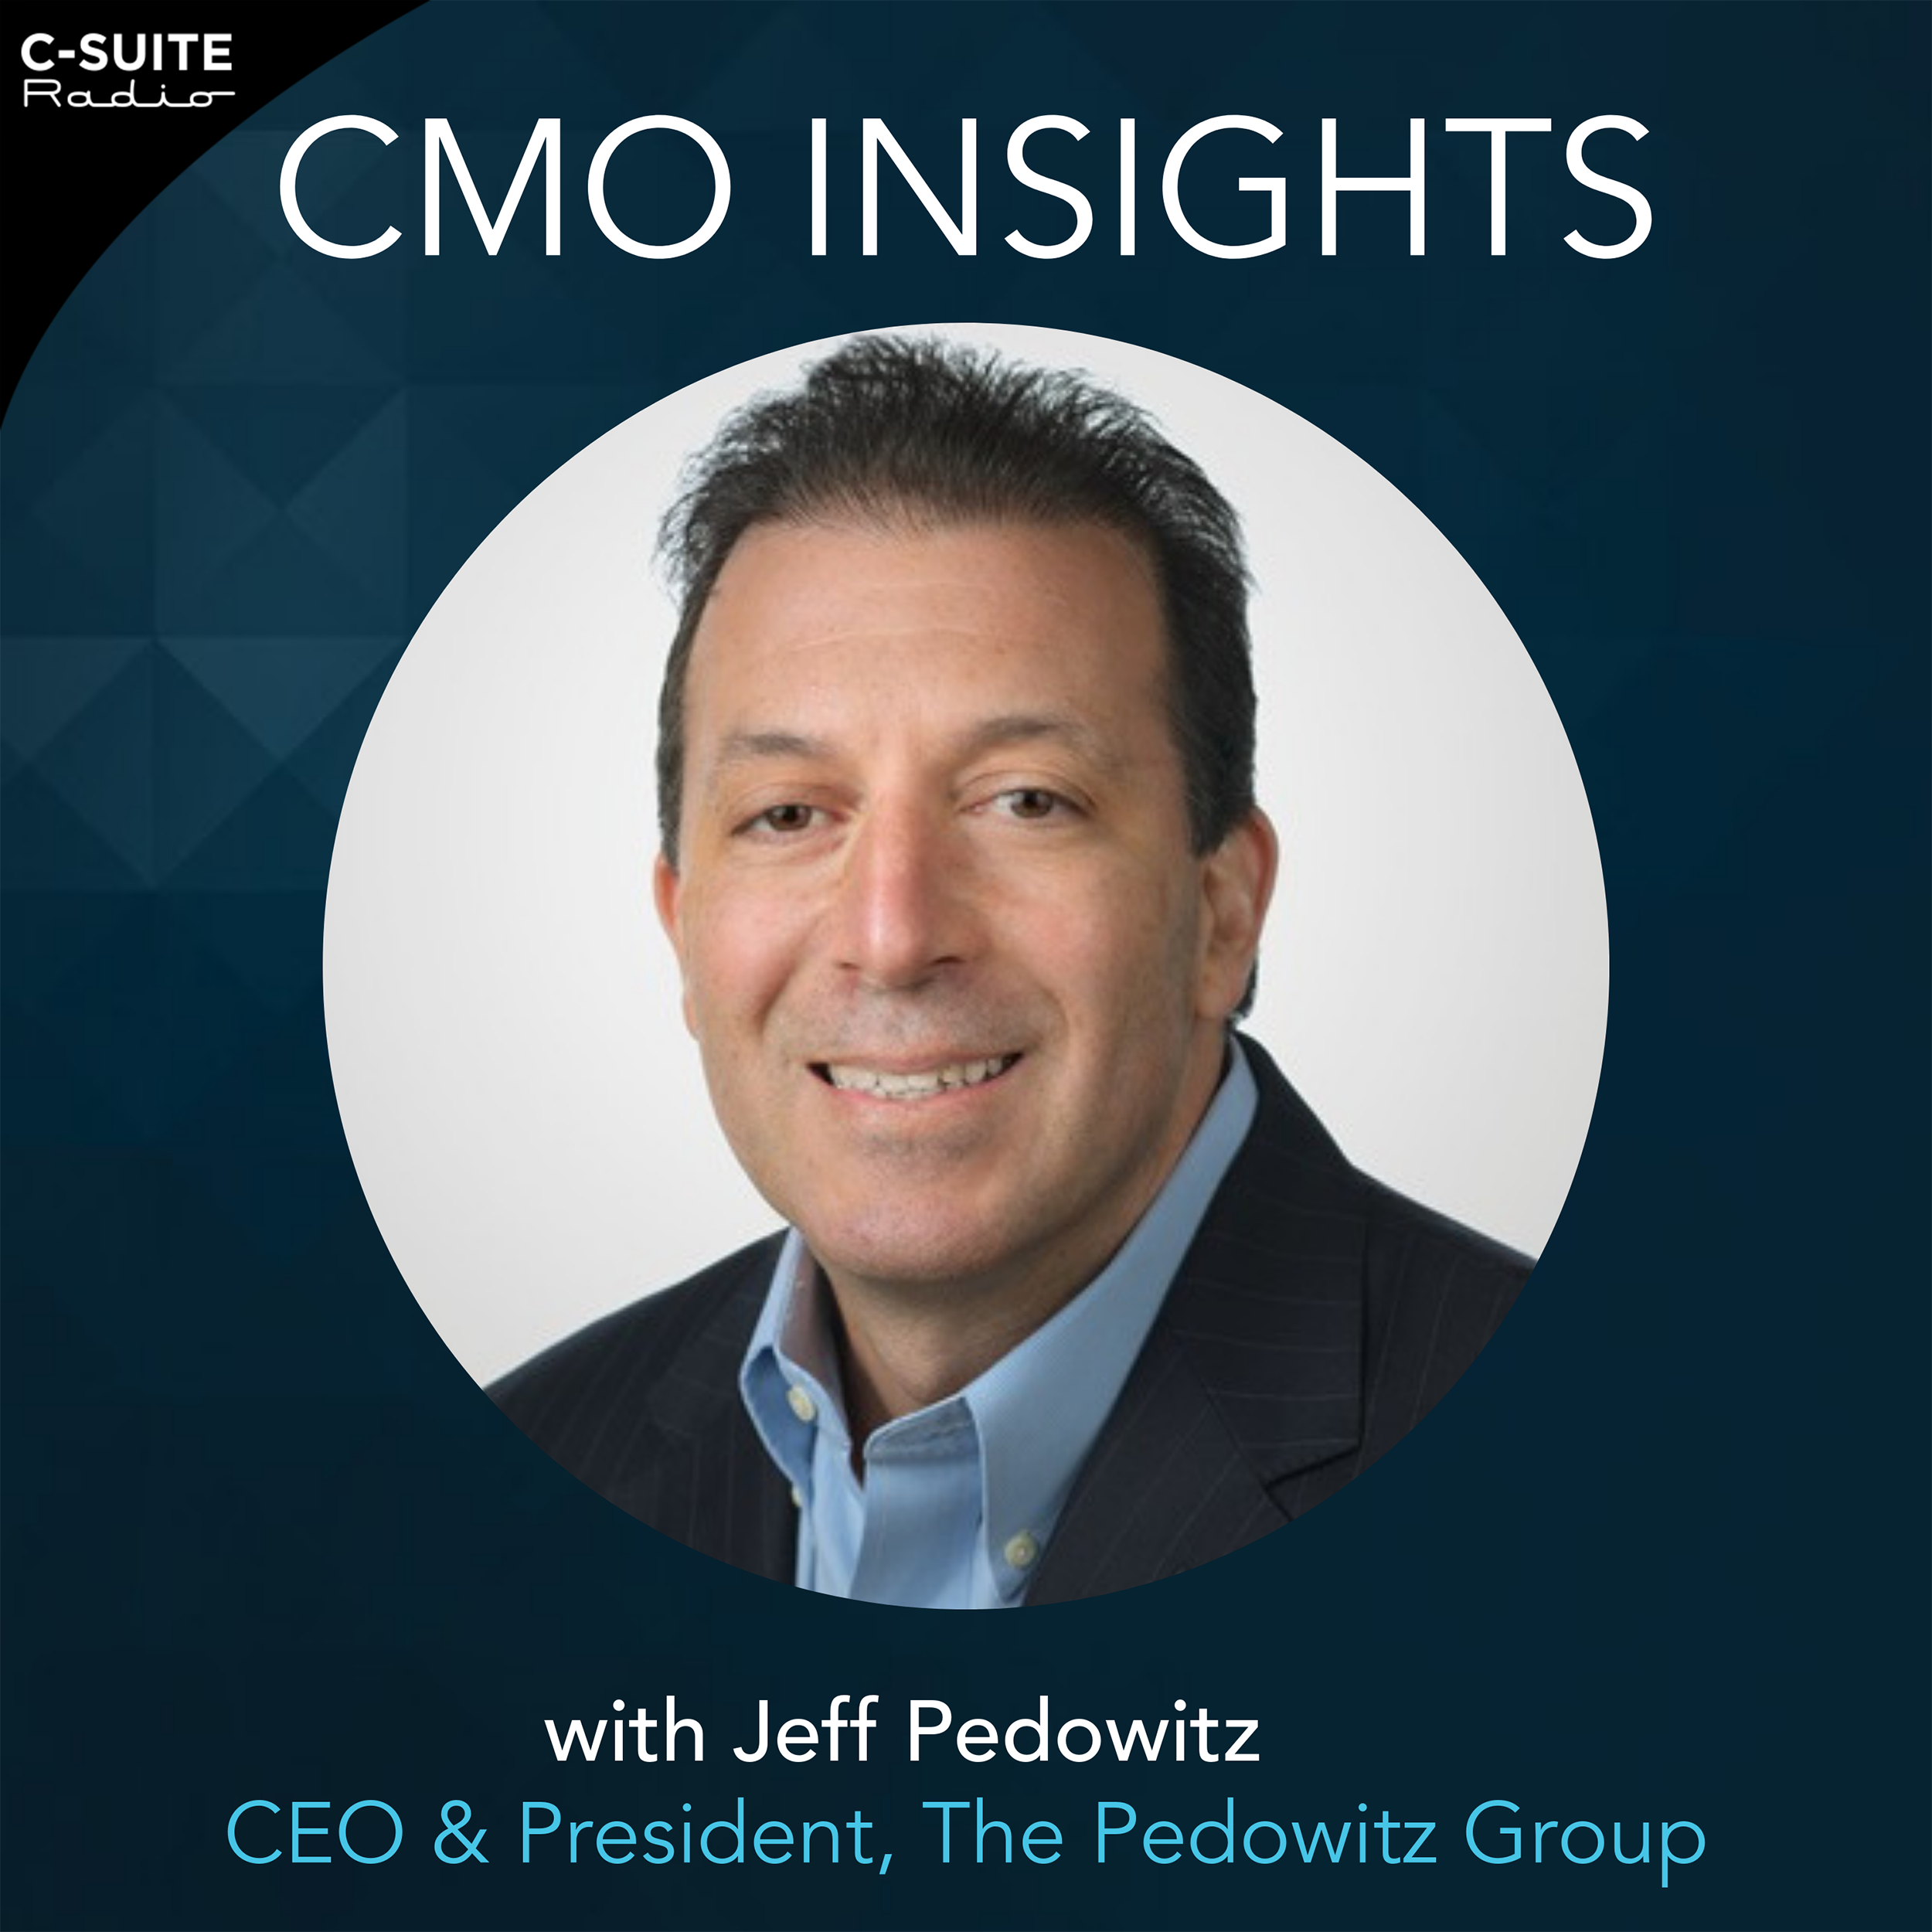 CMO Insights